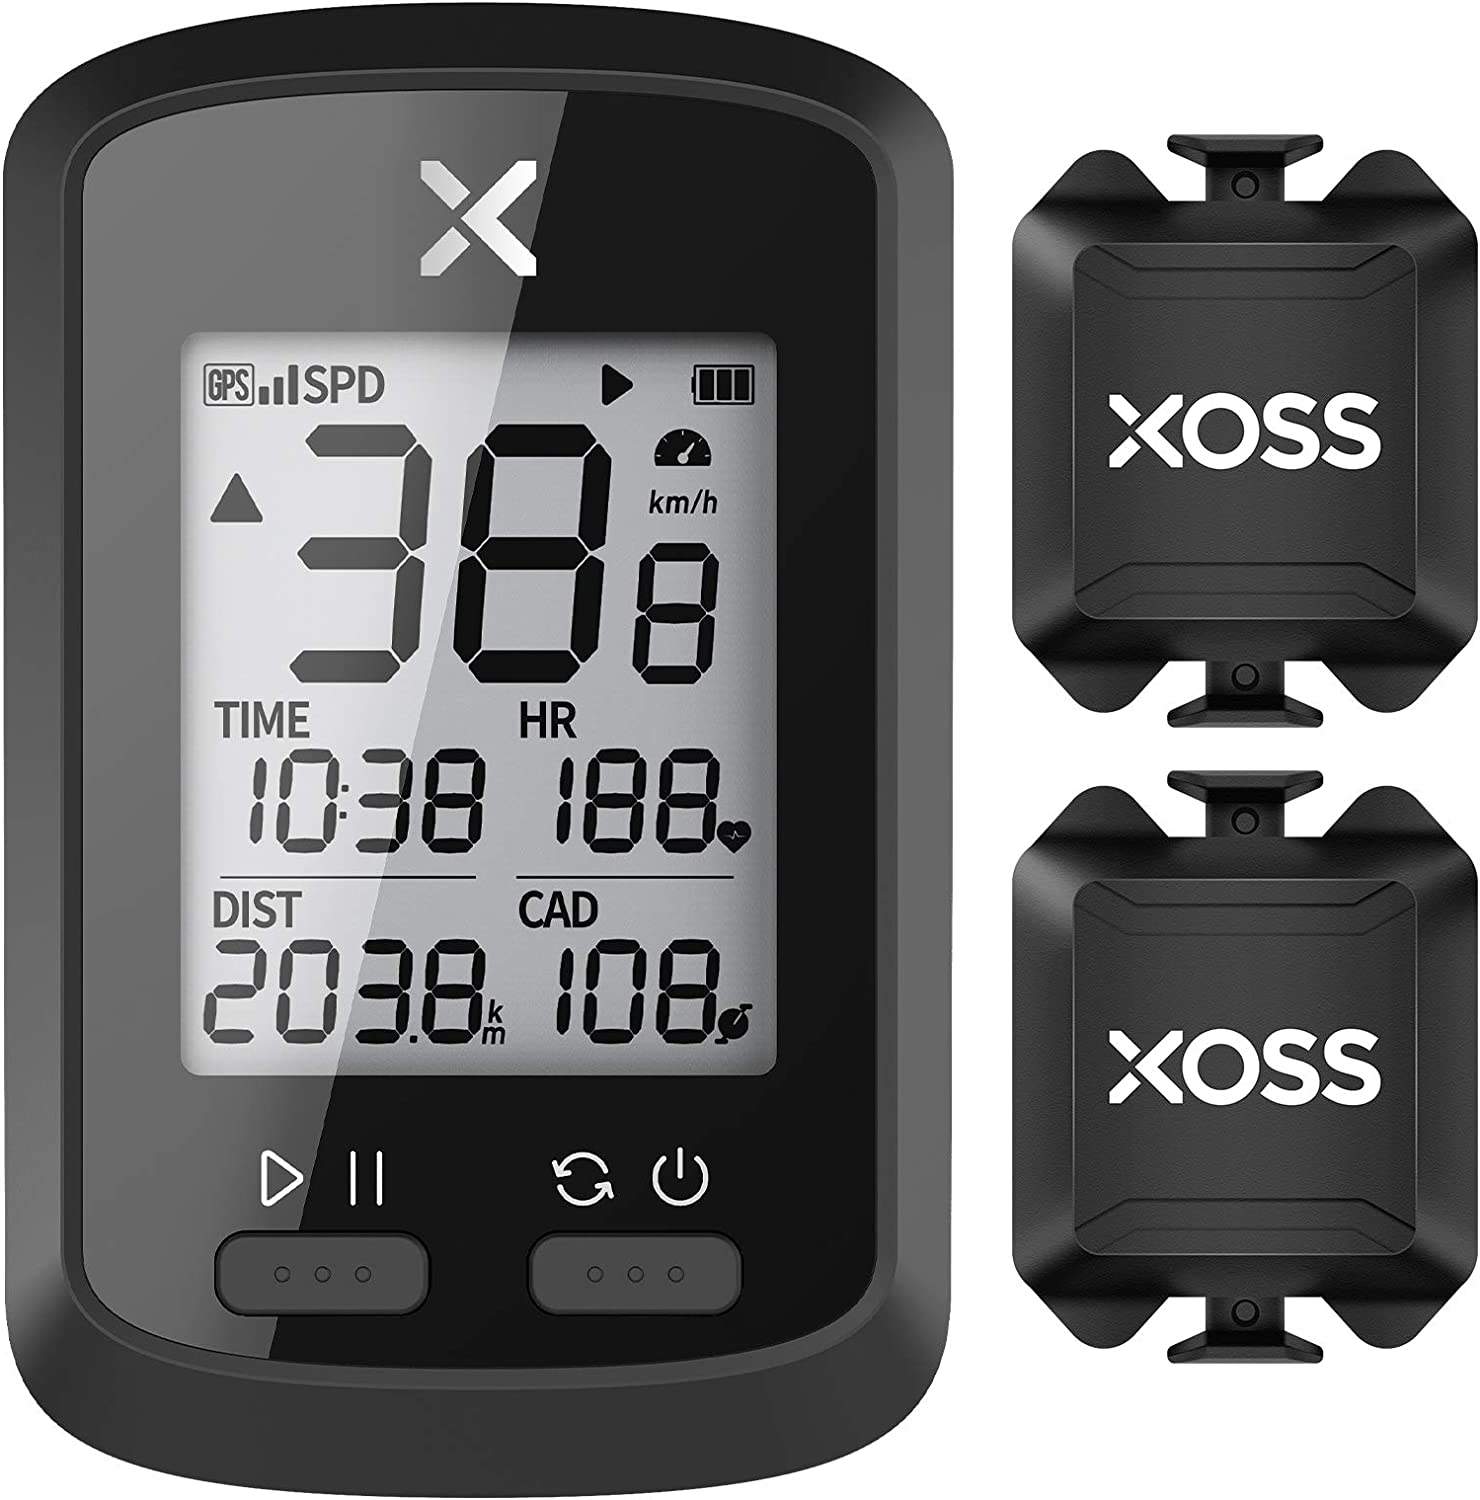 XOSS G+ GPS Bike Computer ANT+ with 2 Smart Cadence Sensor, Bluetooth Cycling Computer, Wireless Bicycle Speedometer Odometer, Waterproof MTB Tracker Fits All Bikes (Support Heart Rate Monitor) : Sports & Outdoors